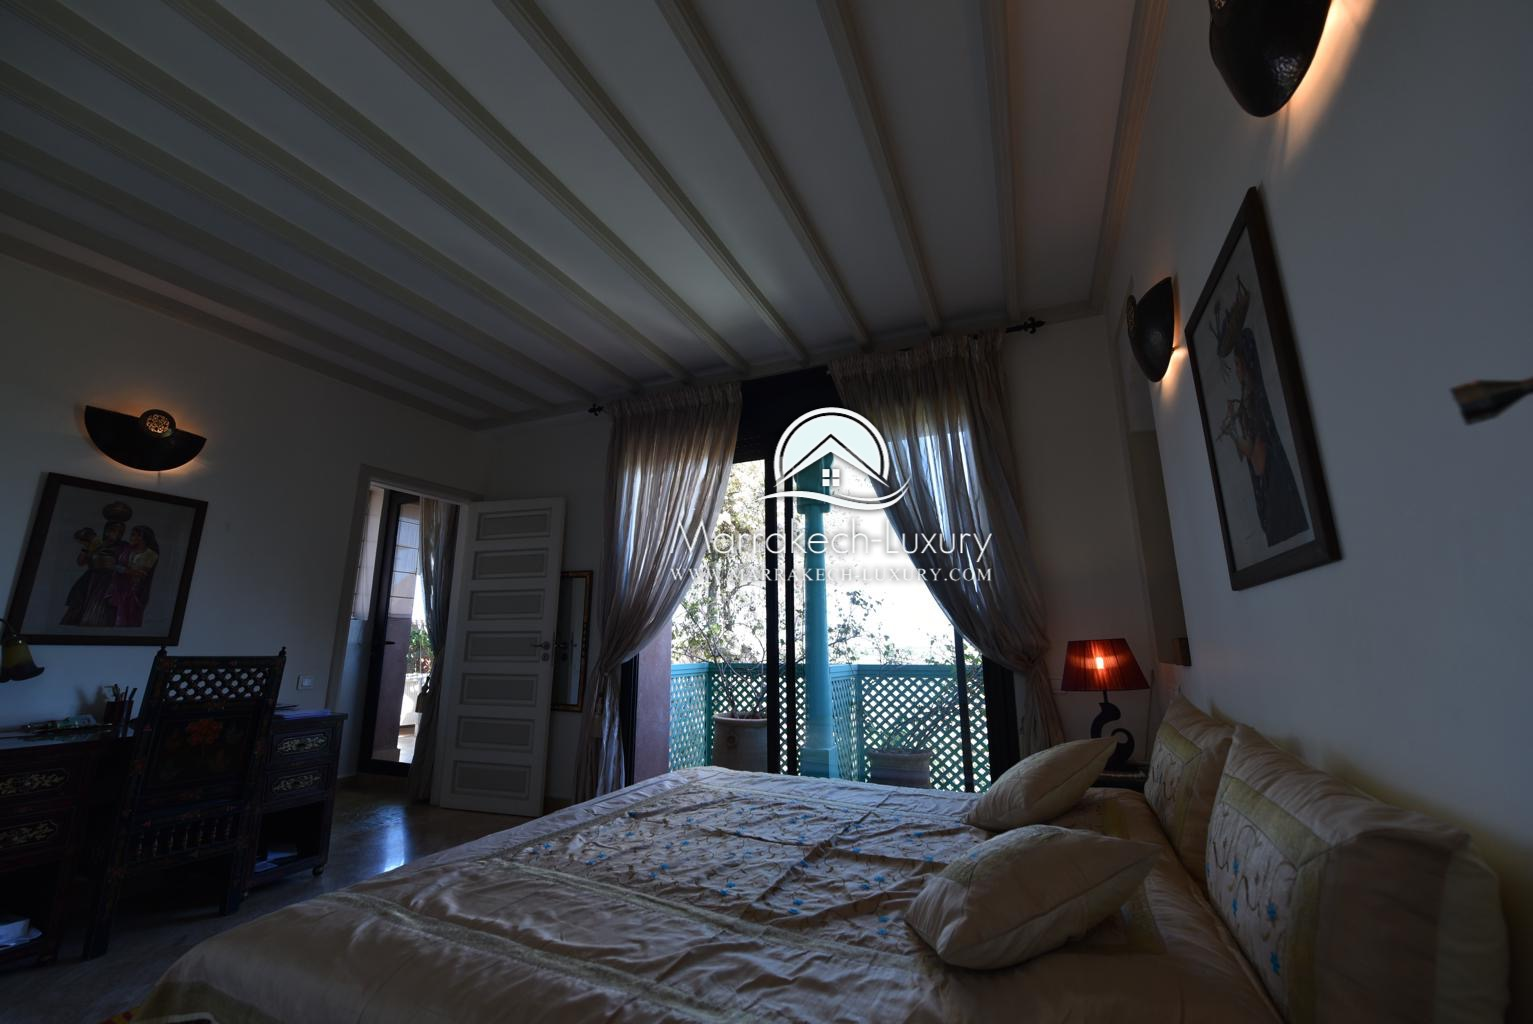 Aptavagd1019 34 agence immobili re marrakech acheter for Agence immobiliere 34